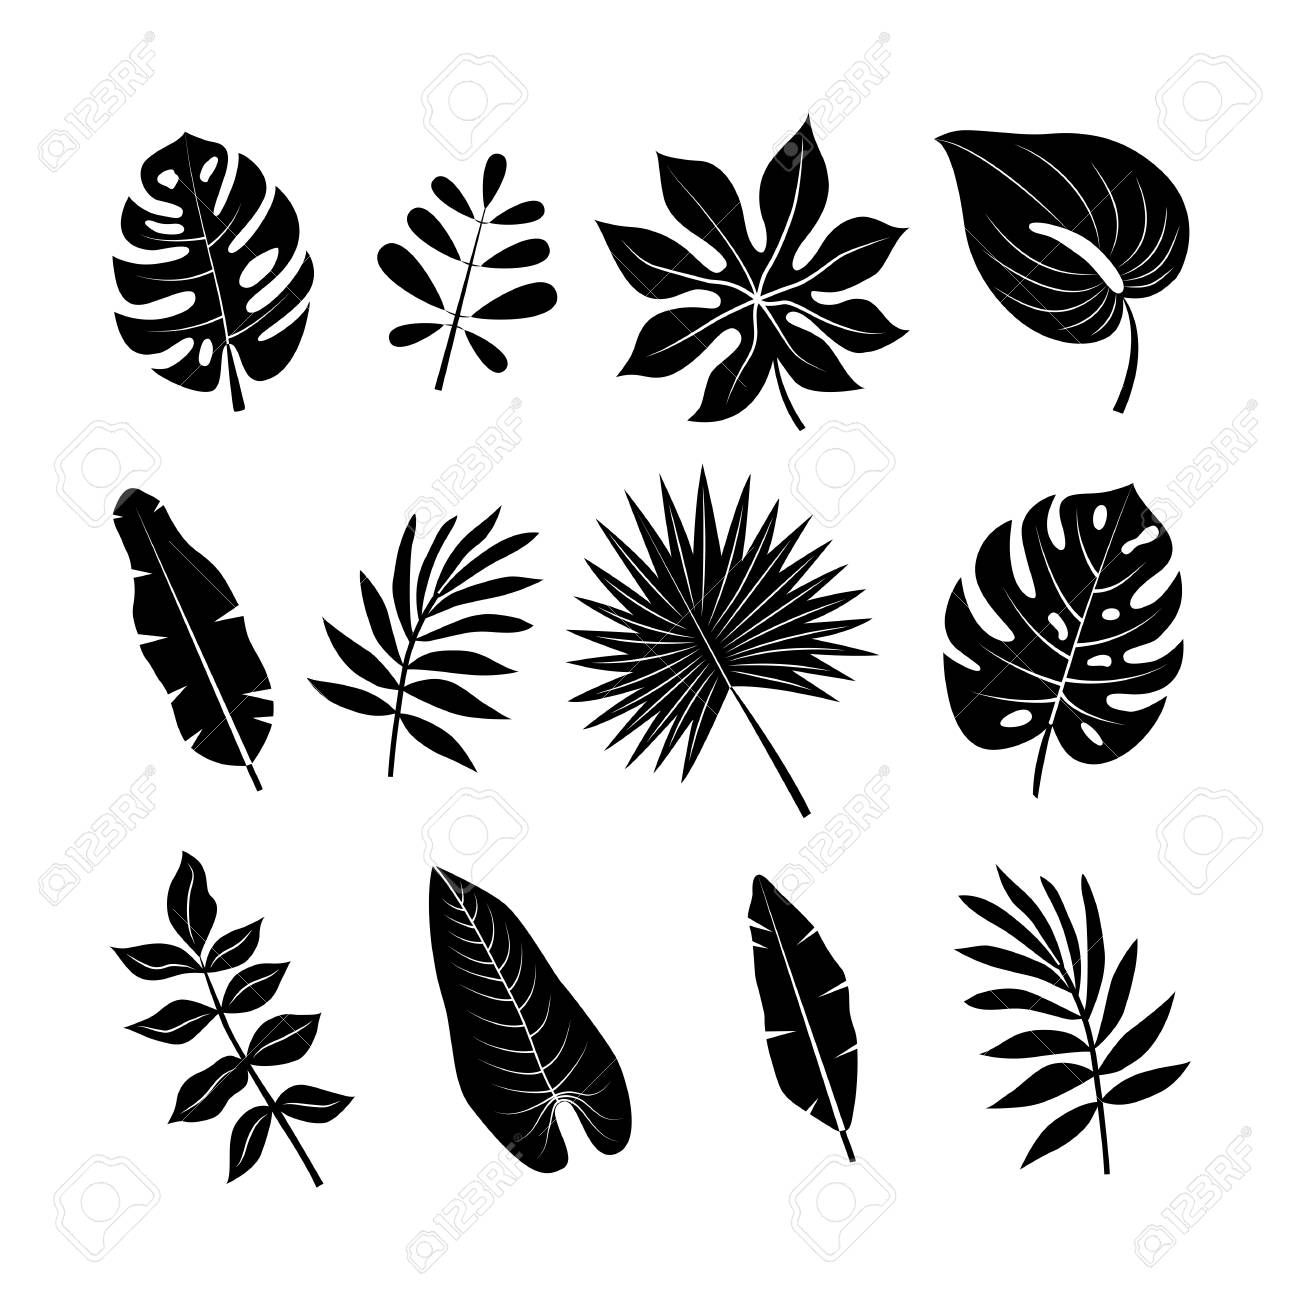 Tropical leaves silhouettes set. Jungle palm leaves collection.